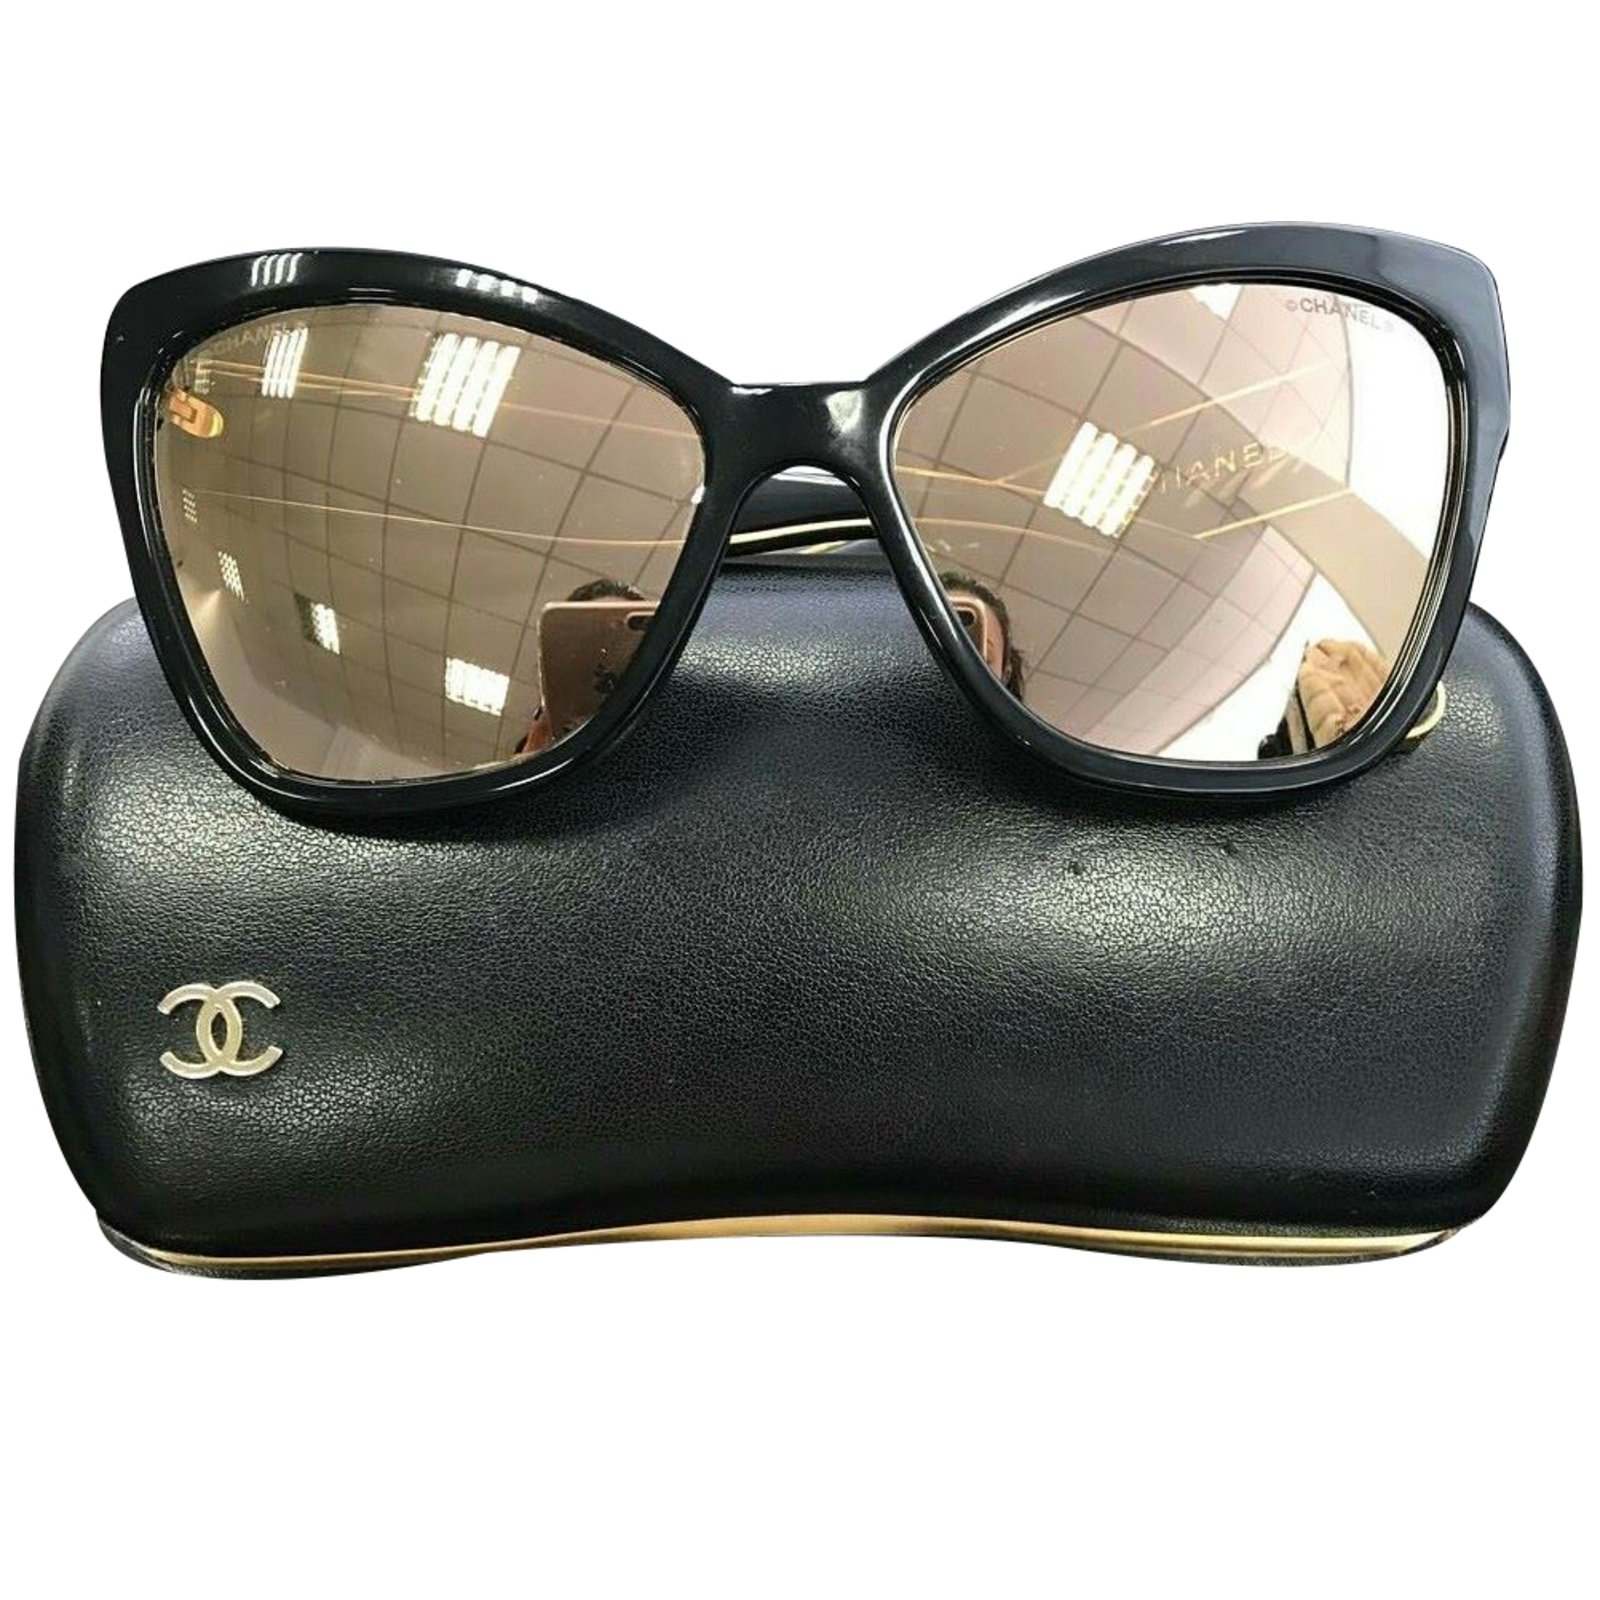 Chanel Cat Eye Sunglasses  chanel cat eye sunglasses plastic black ref 34146 joli closet